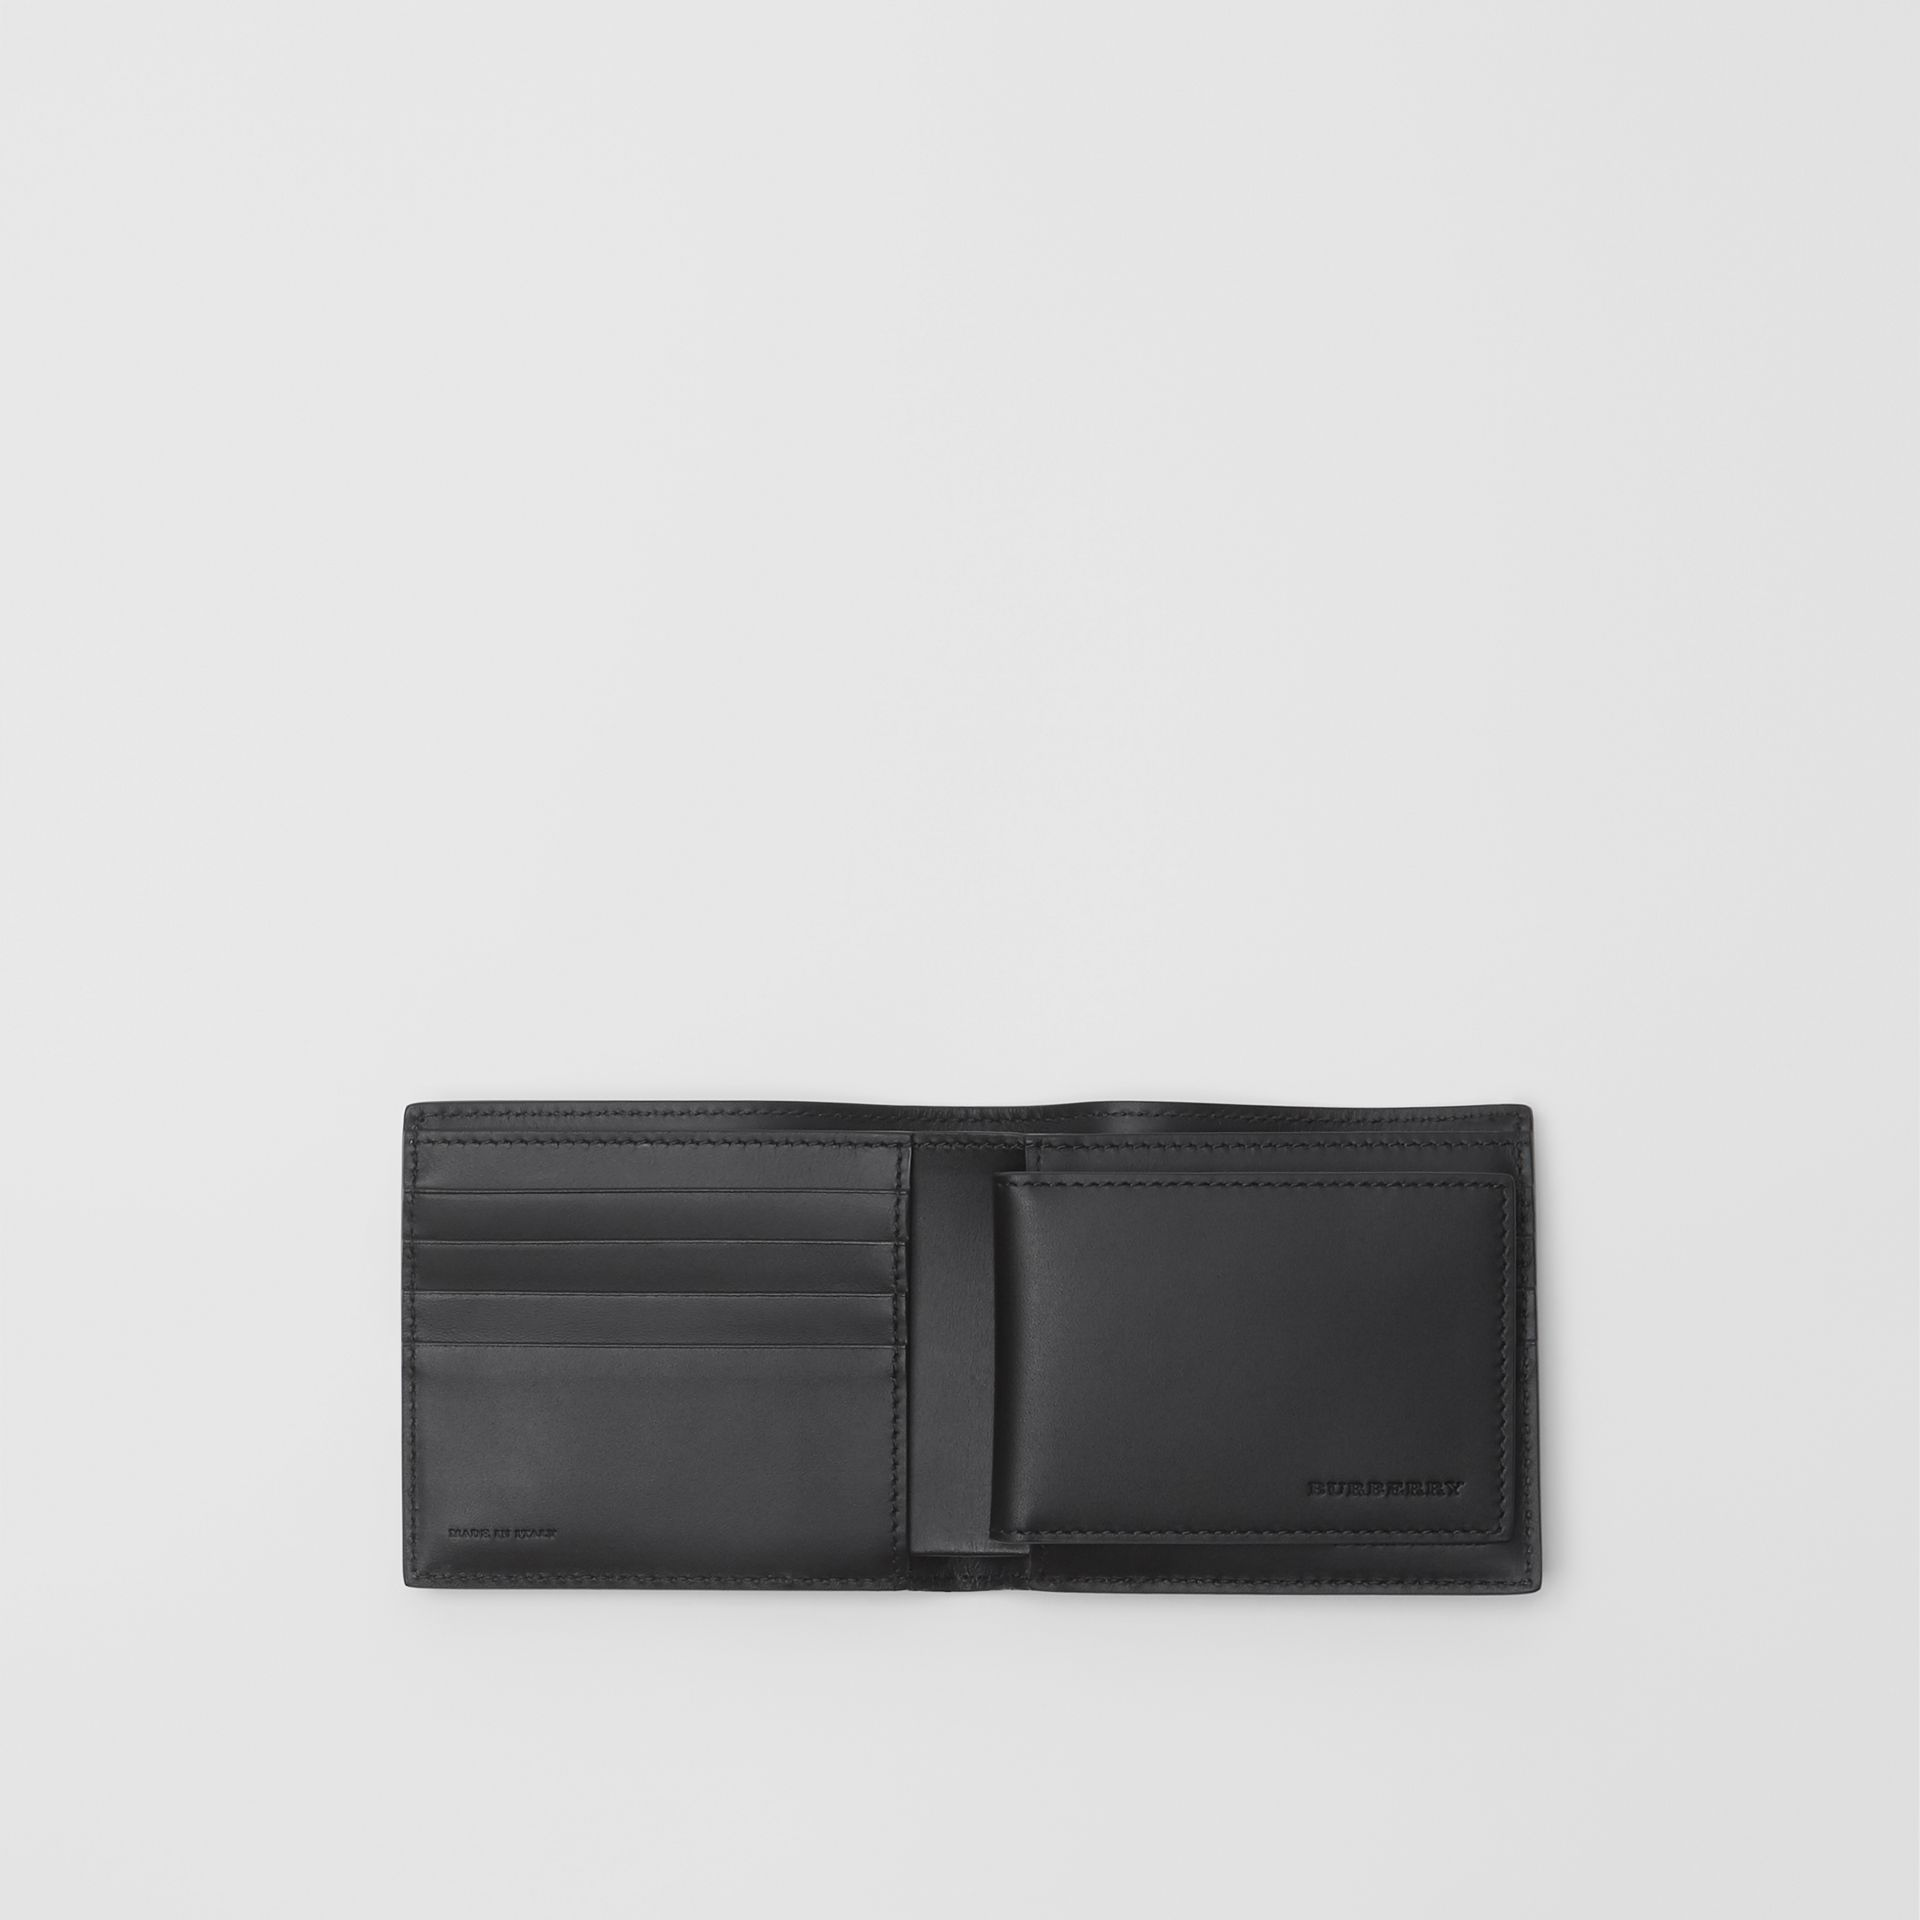 London Leather Bifold Wallet with ID Card Case in Navy - Men | Burberry - gallery image 2